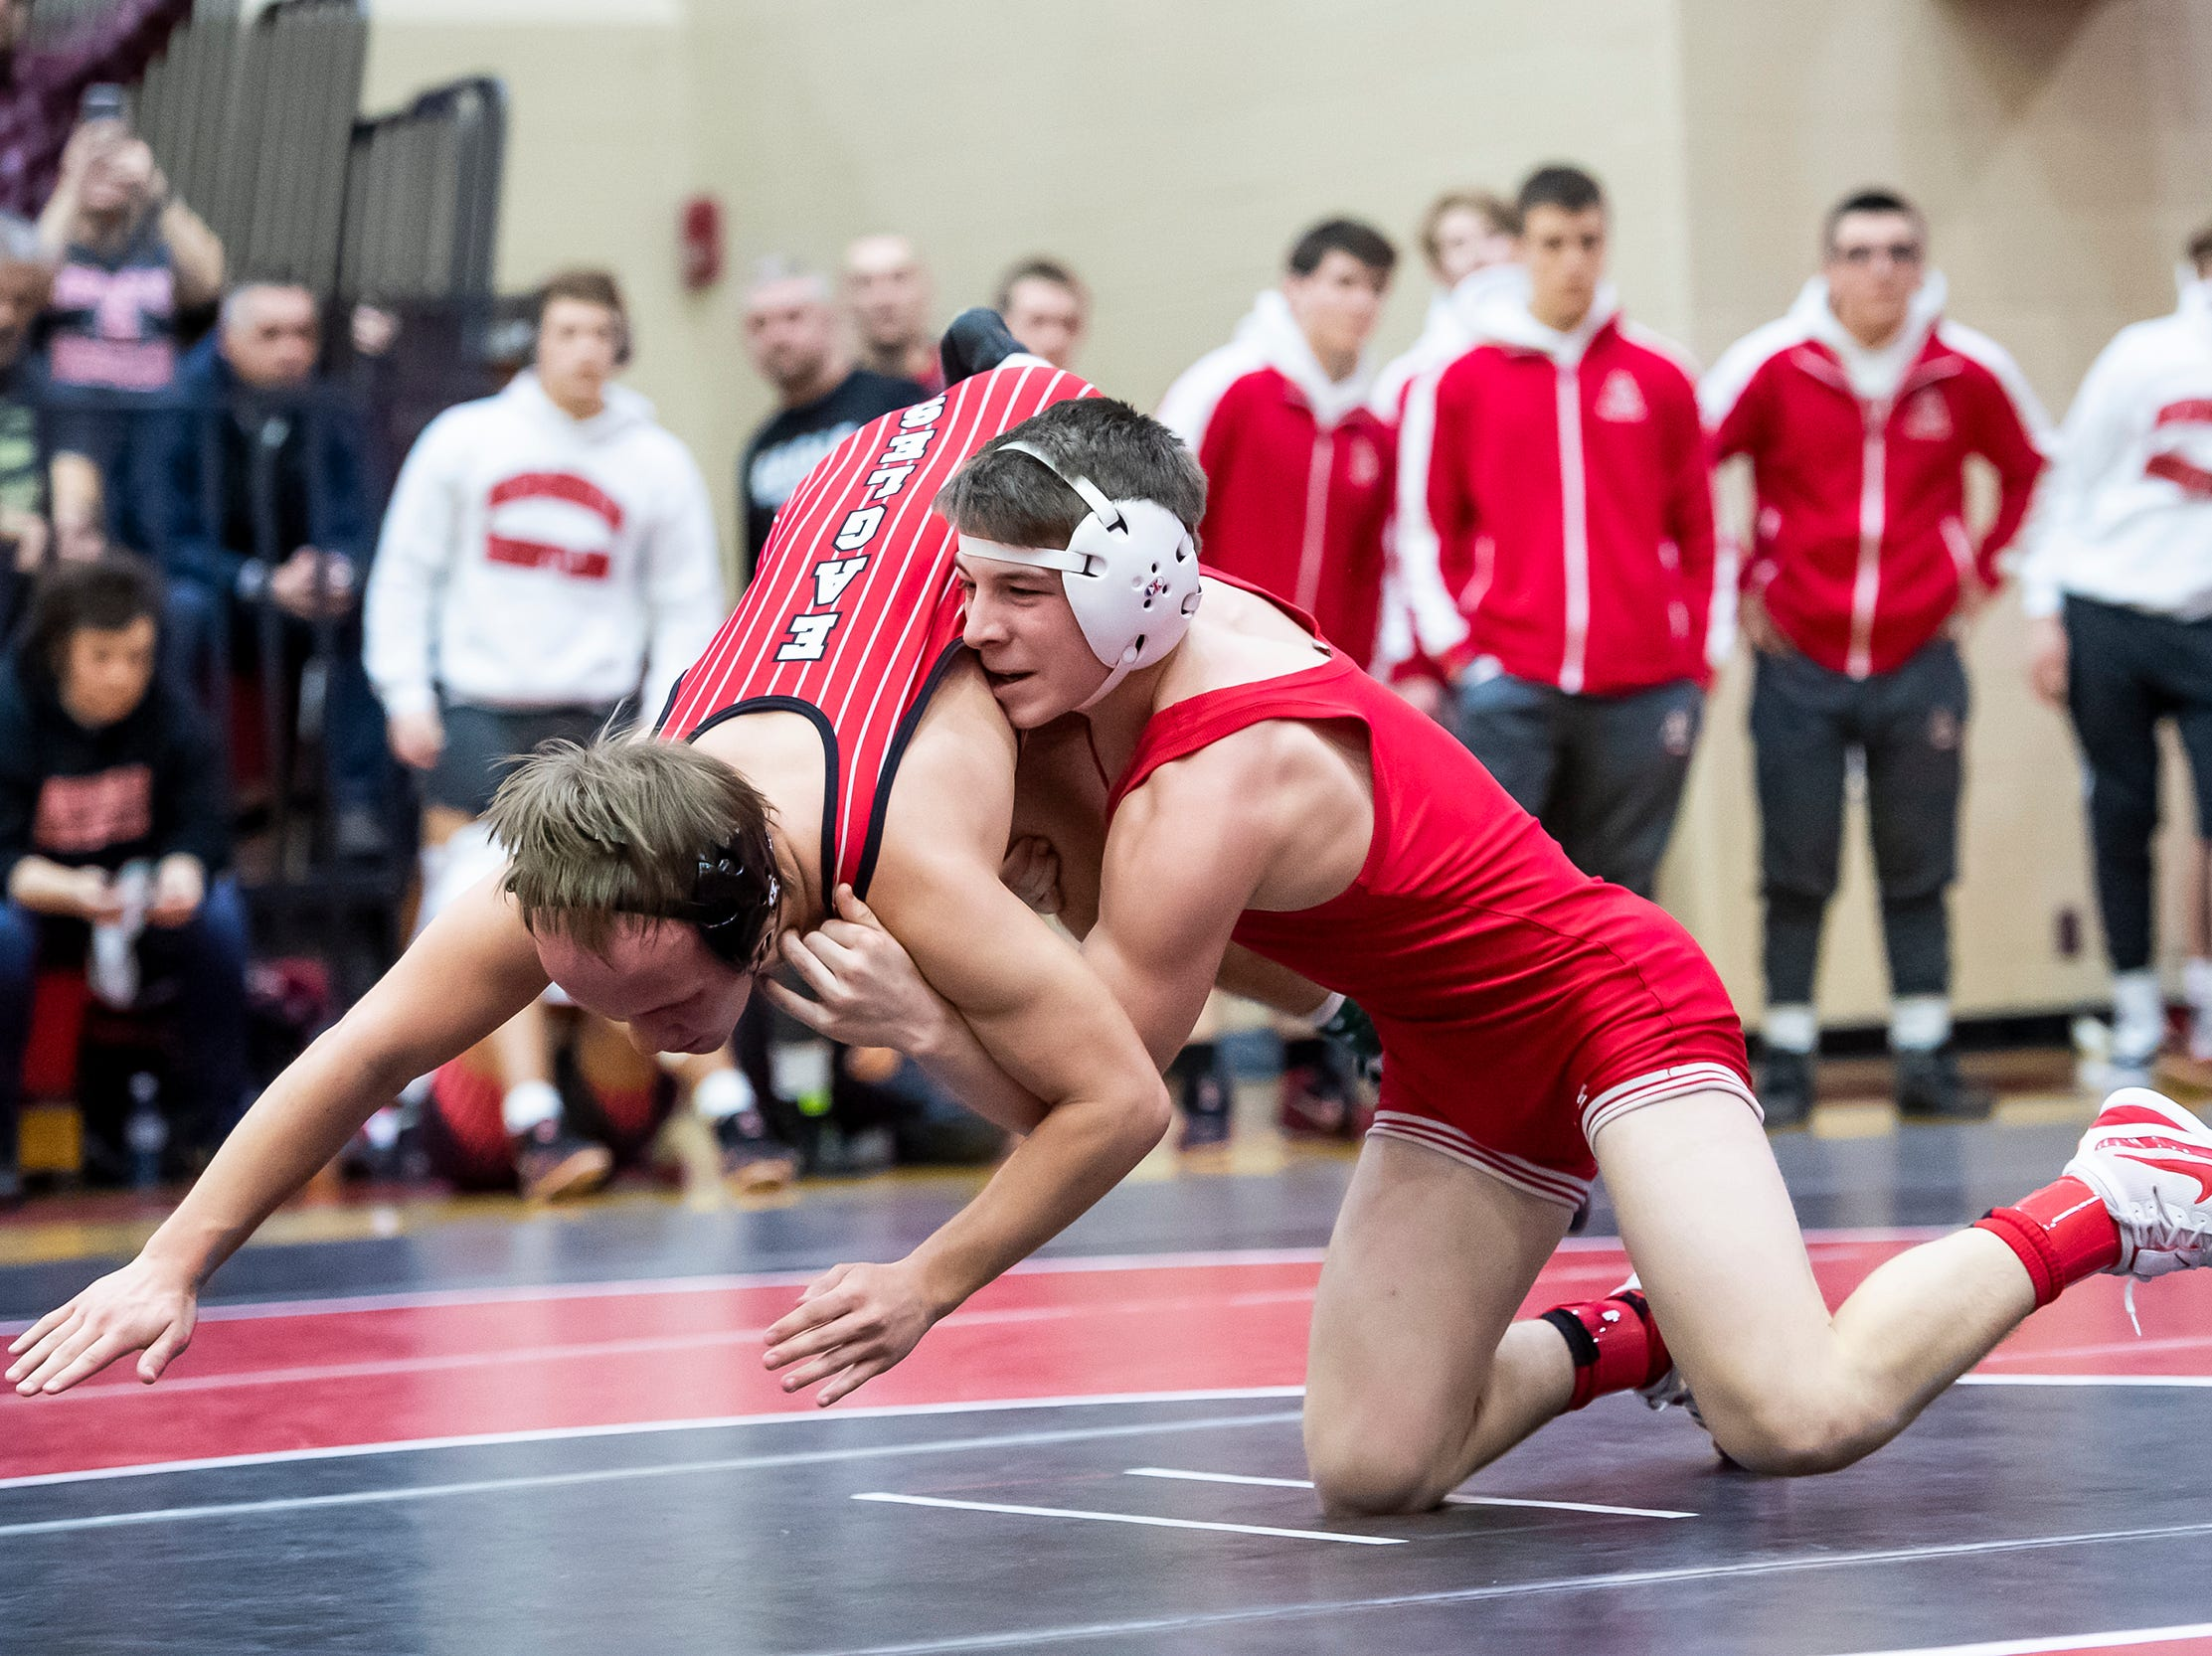 Bermudian Springs' Korey Smith, left, wrestles Hamburg's Bailey Gimbor in a 120-pound bout during a PIAA District III 2A semifinal match at Cumberland Valley High School January 31, 2019. The Eagles fell 43-24.